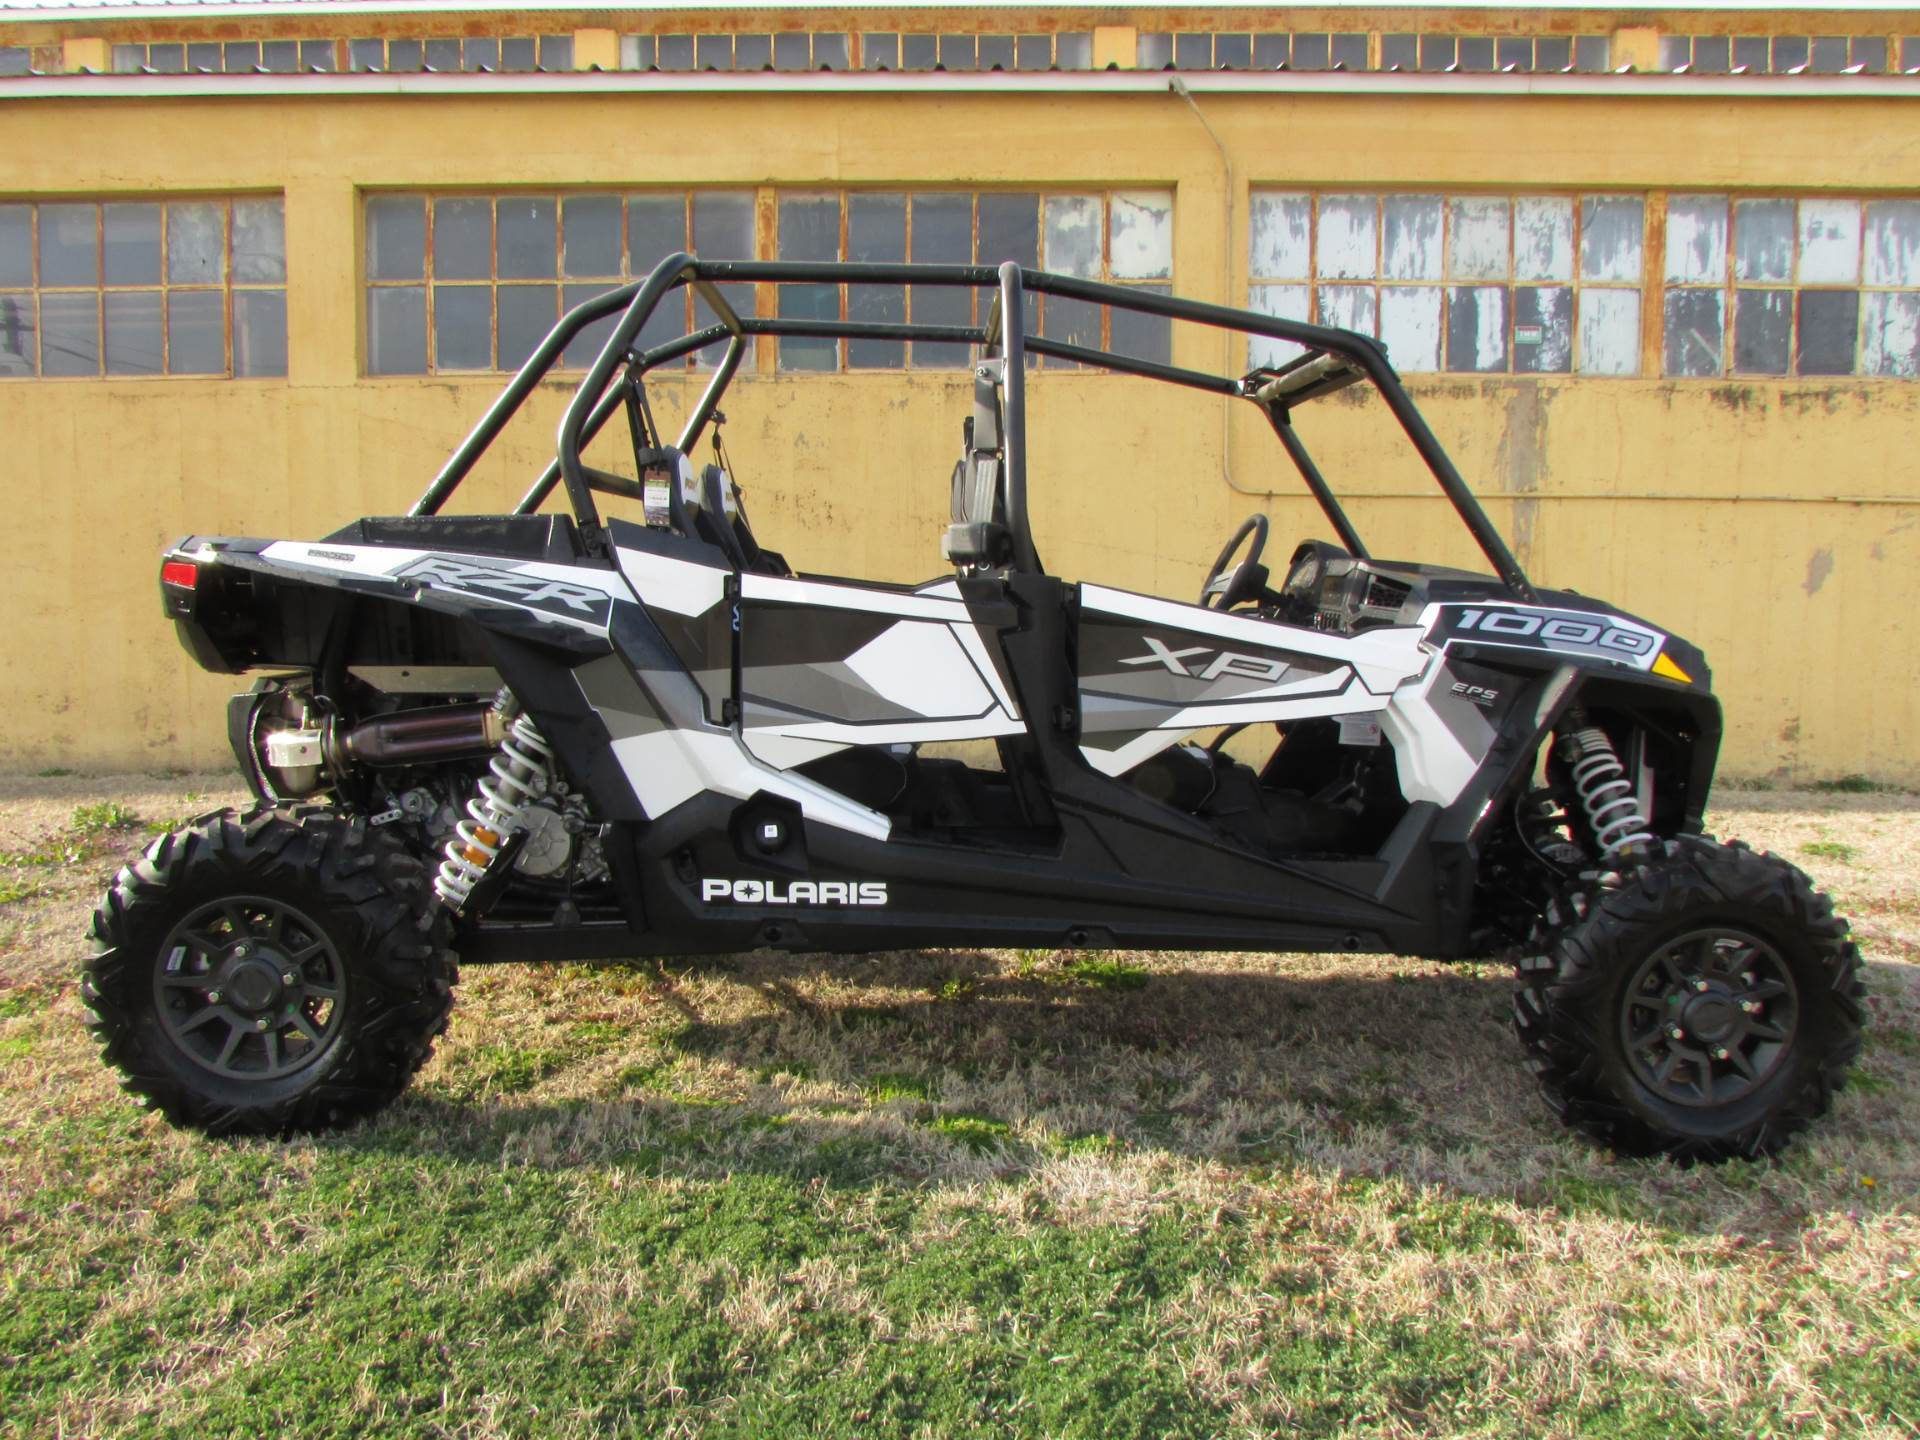 2019 Polaris RZR XP 4 1000 EPS in Wichita Falls, Texas - Photo 2